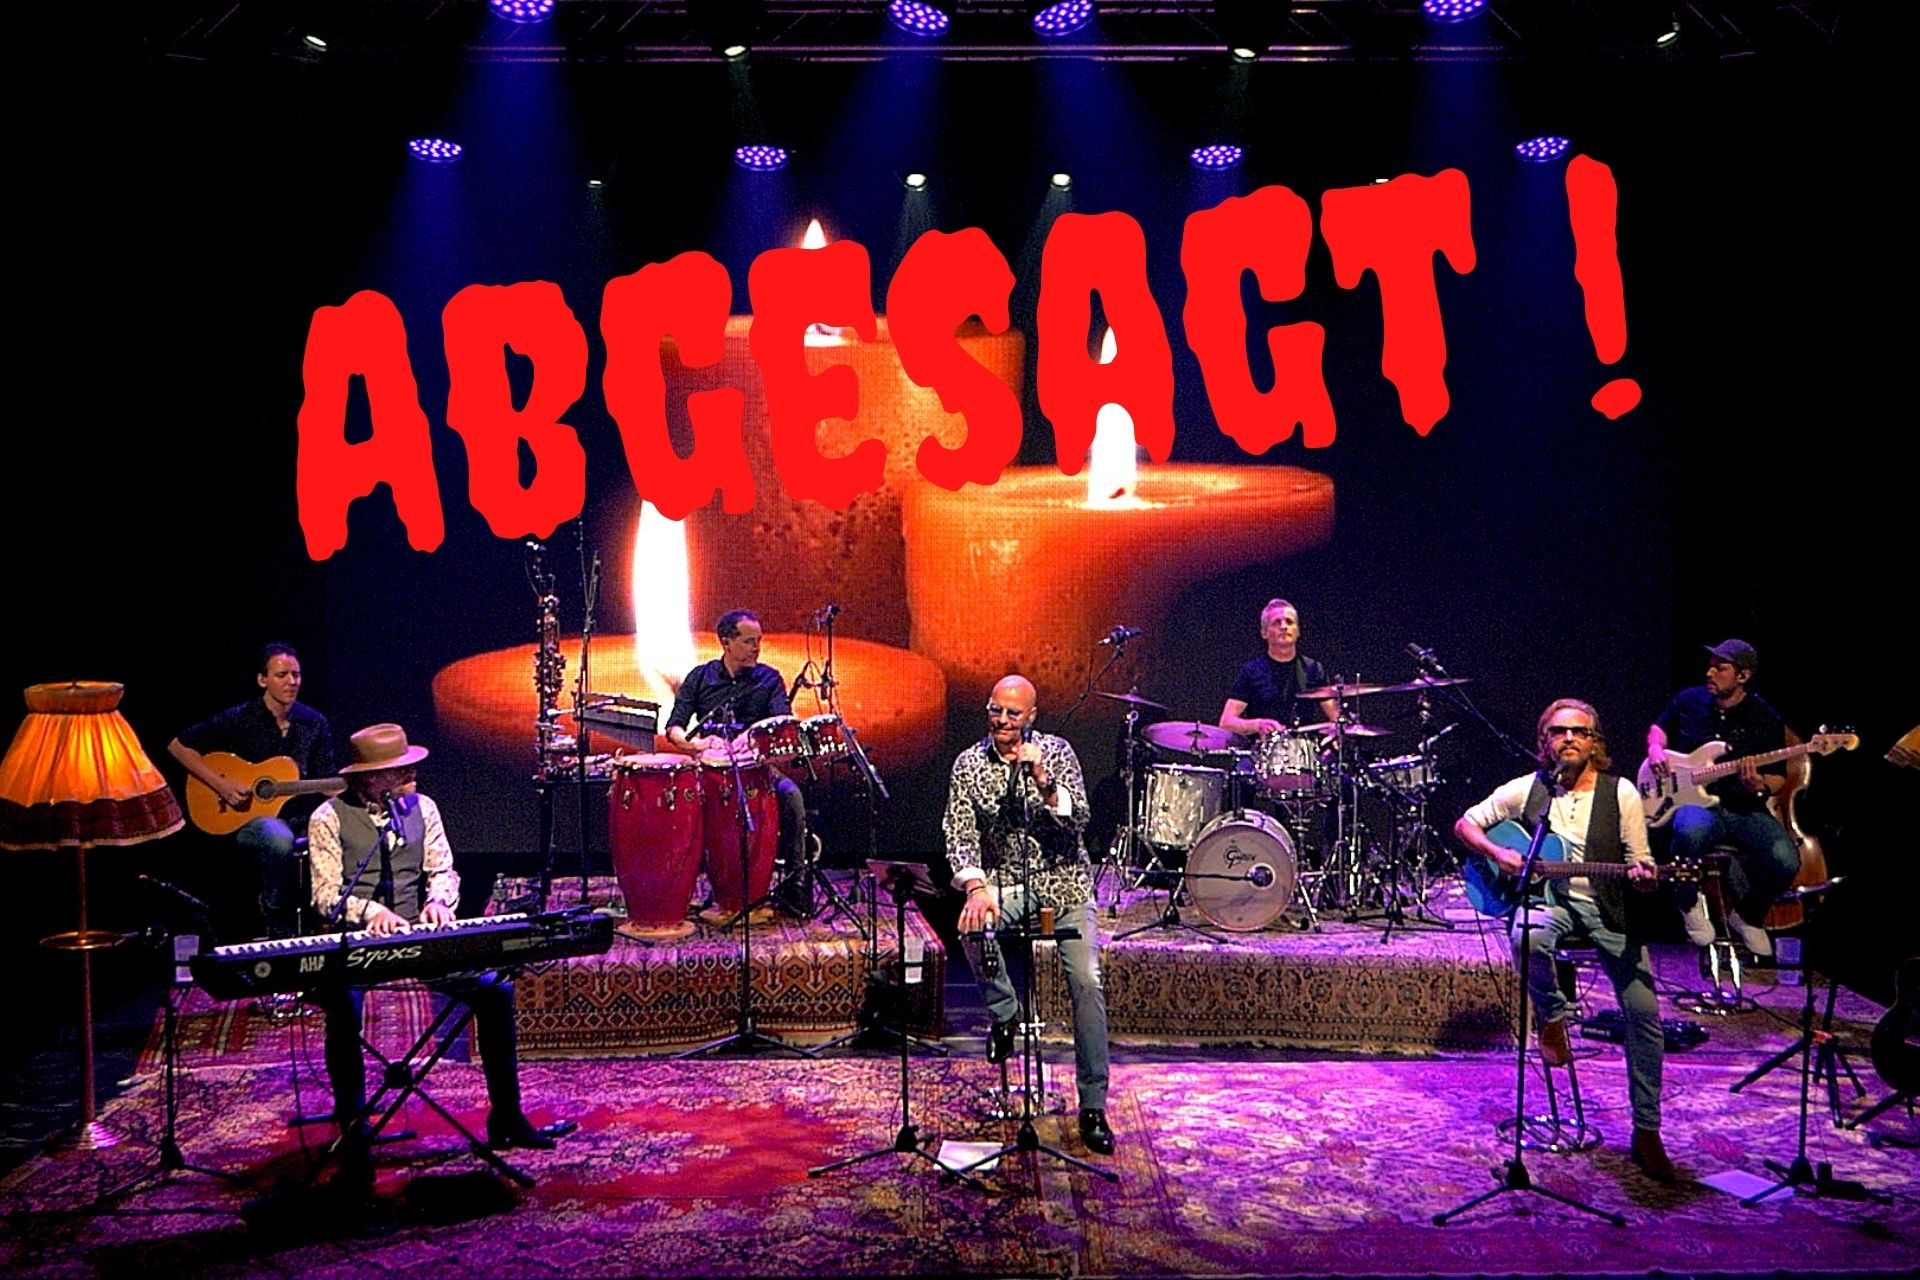 ABGESAGT / Night Fever ACOUSTIC Konzert - Unplugged NEU